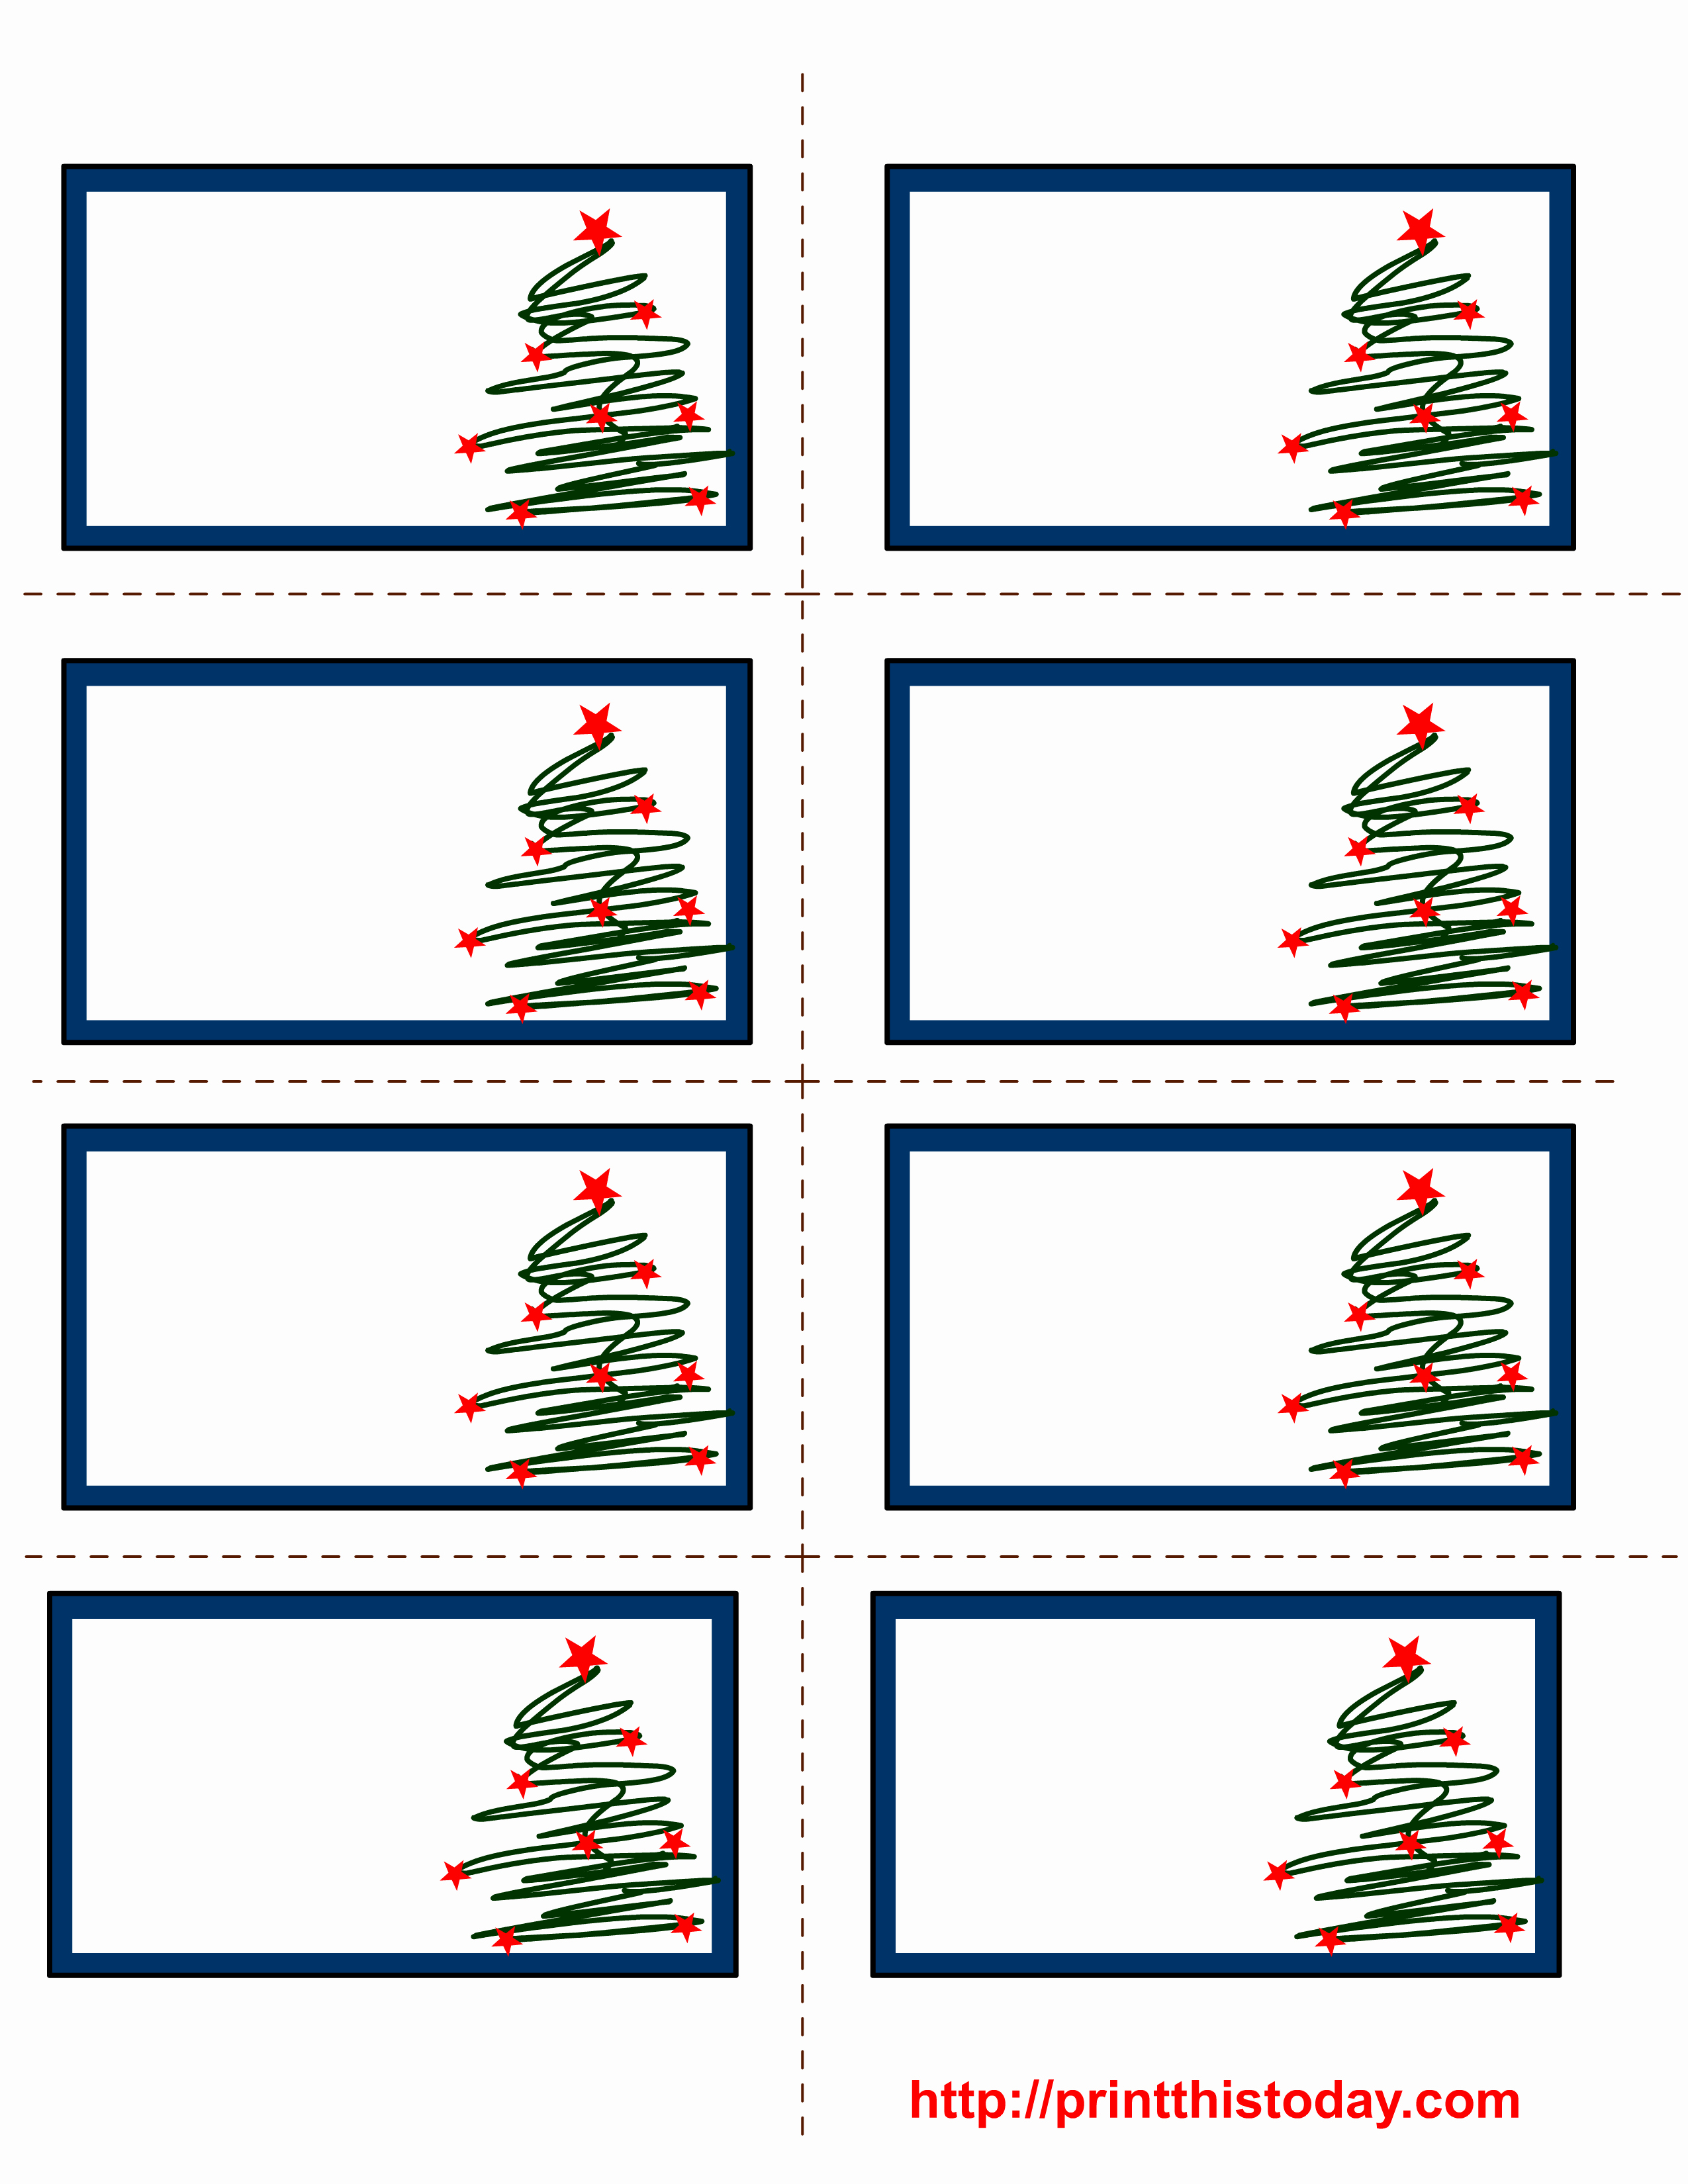 Printable Christmas Return Address Labels Awesome Free Printable Christmas Labels with Trees